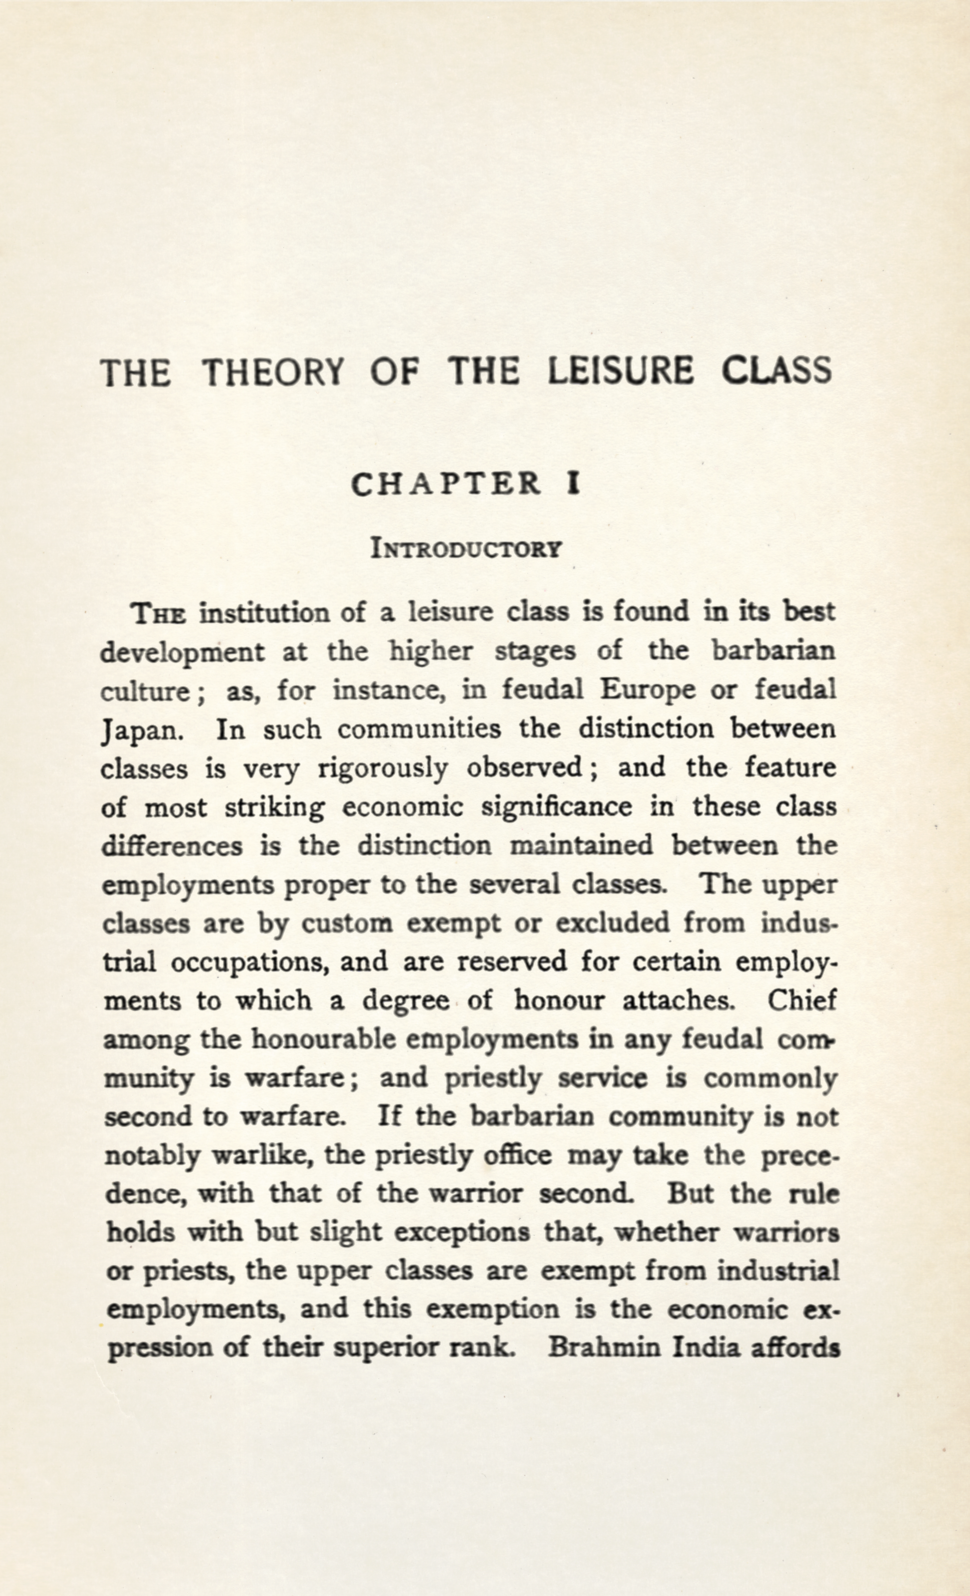 Veblen - Theory of the leisure class, 1924 - 5854536